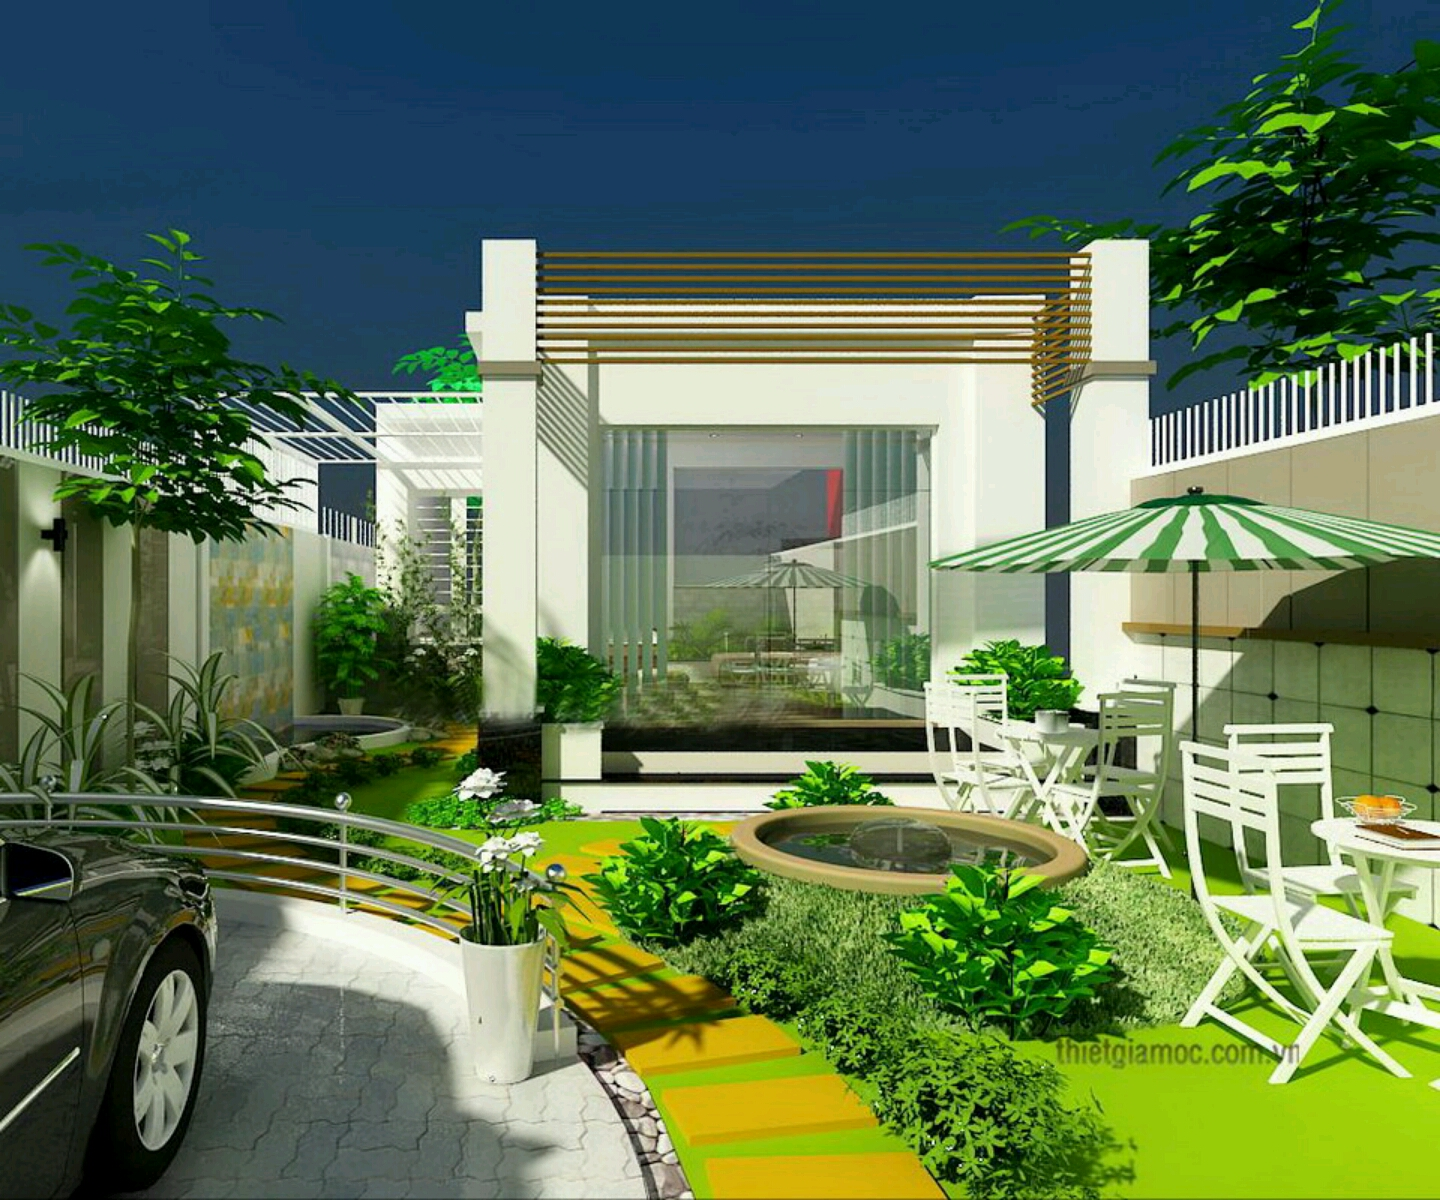 Home Designs October 2012: Modern Homes Beautiful Garden Designs Ideas.